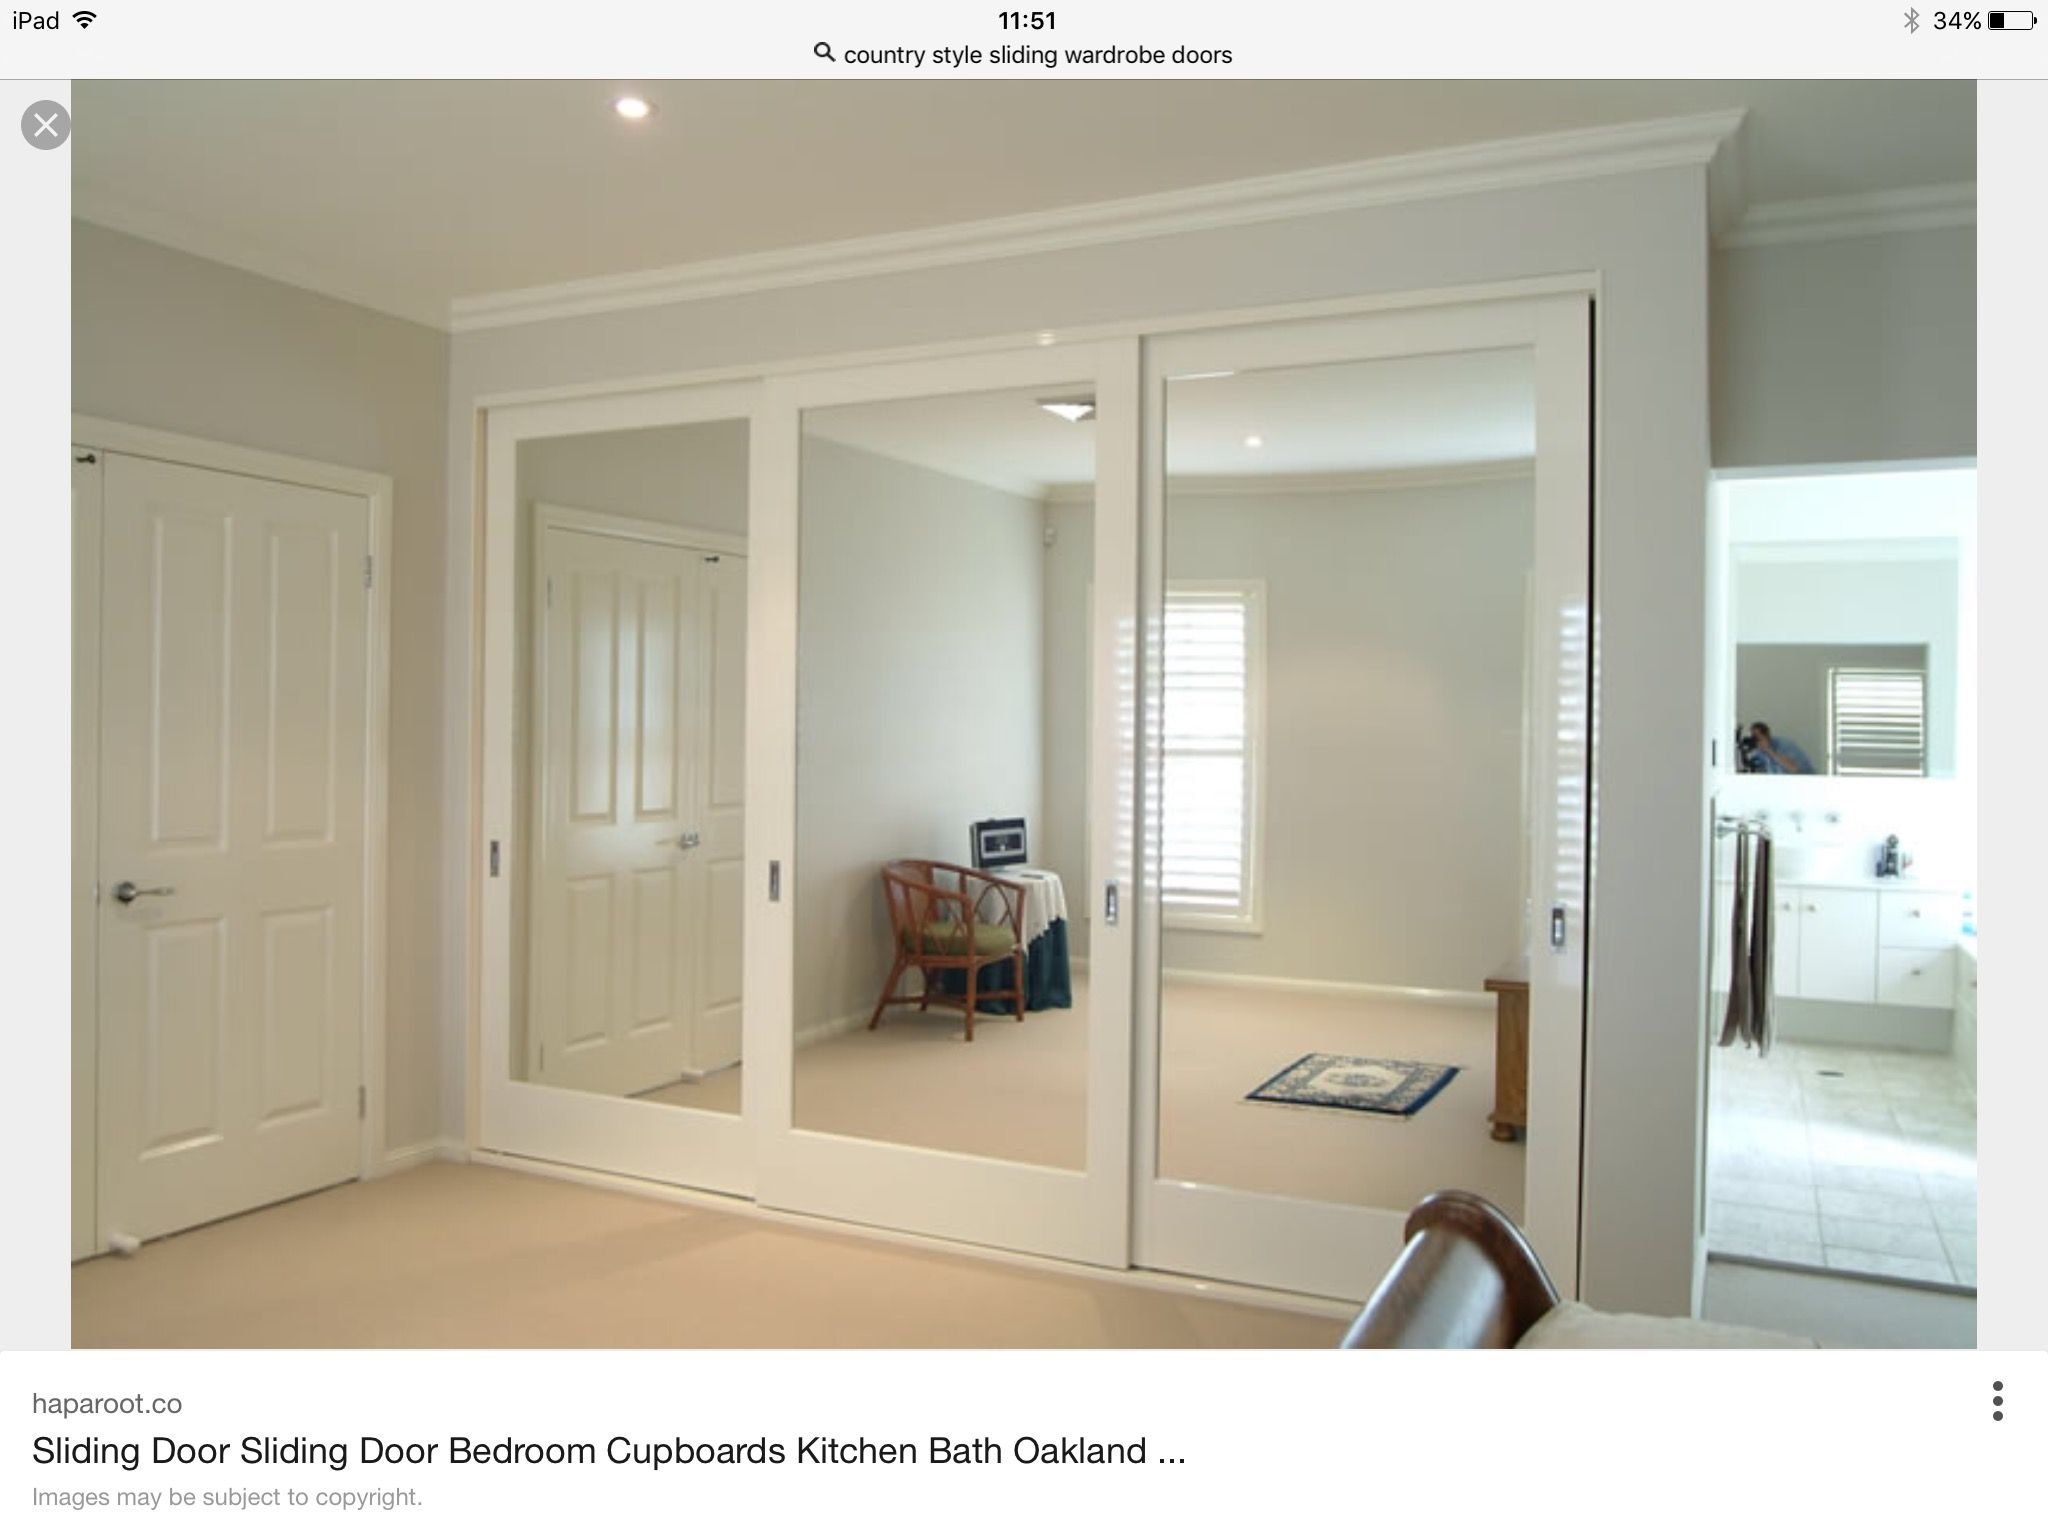 Sliding Wardrobe Doors Mirror